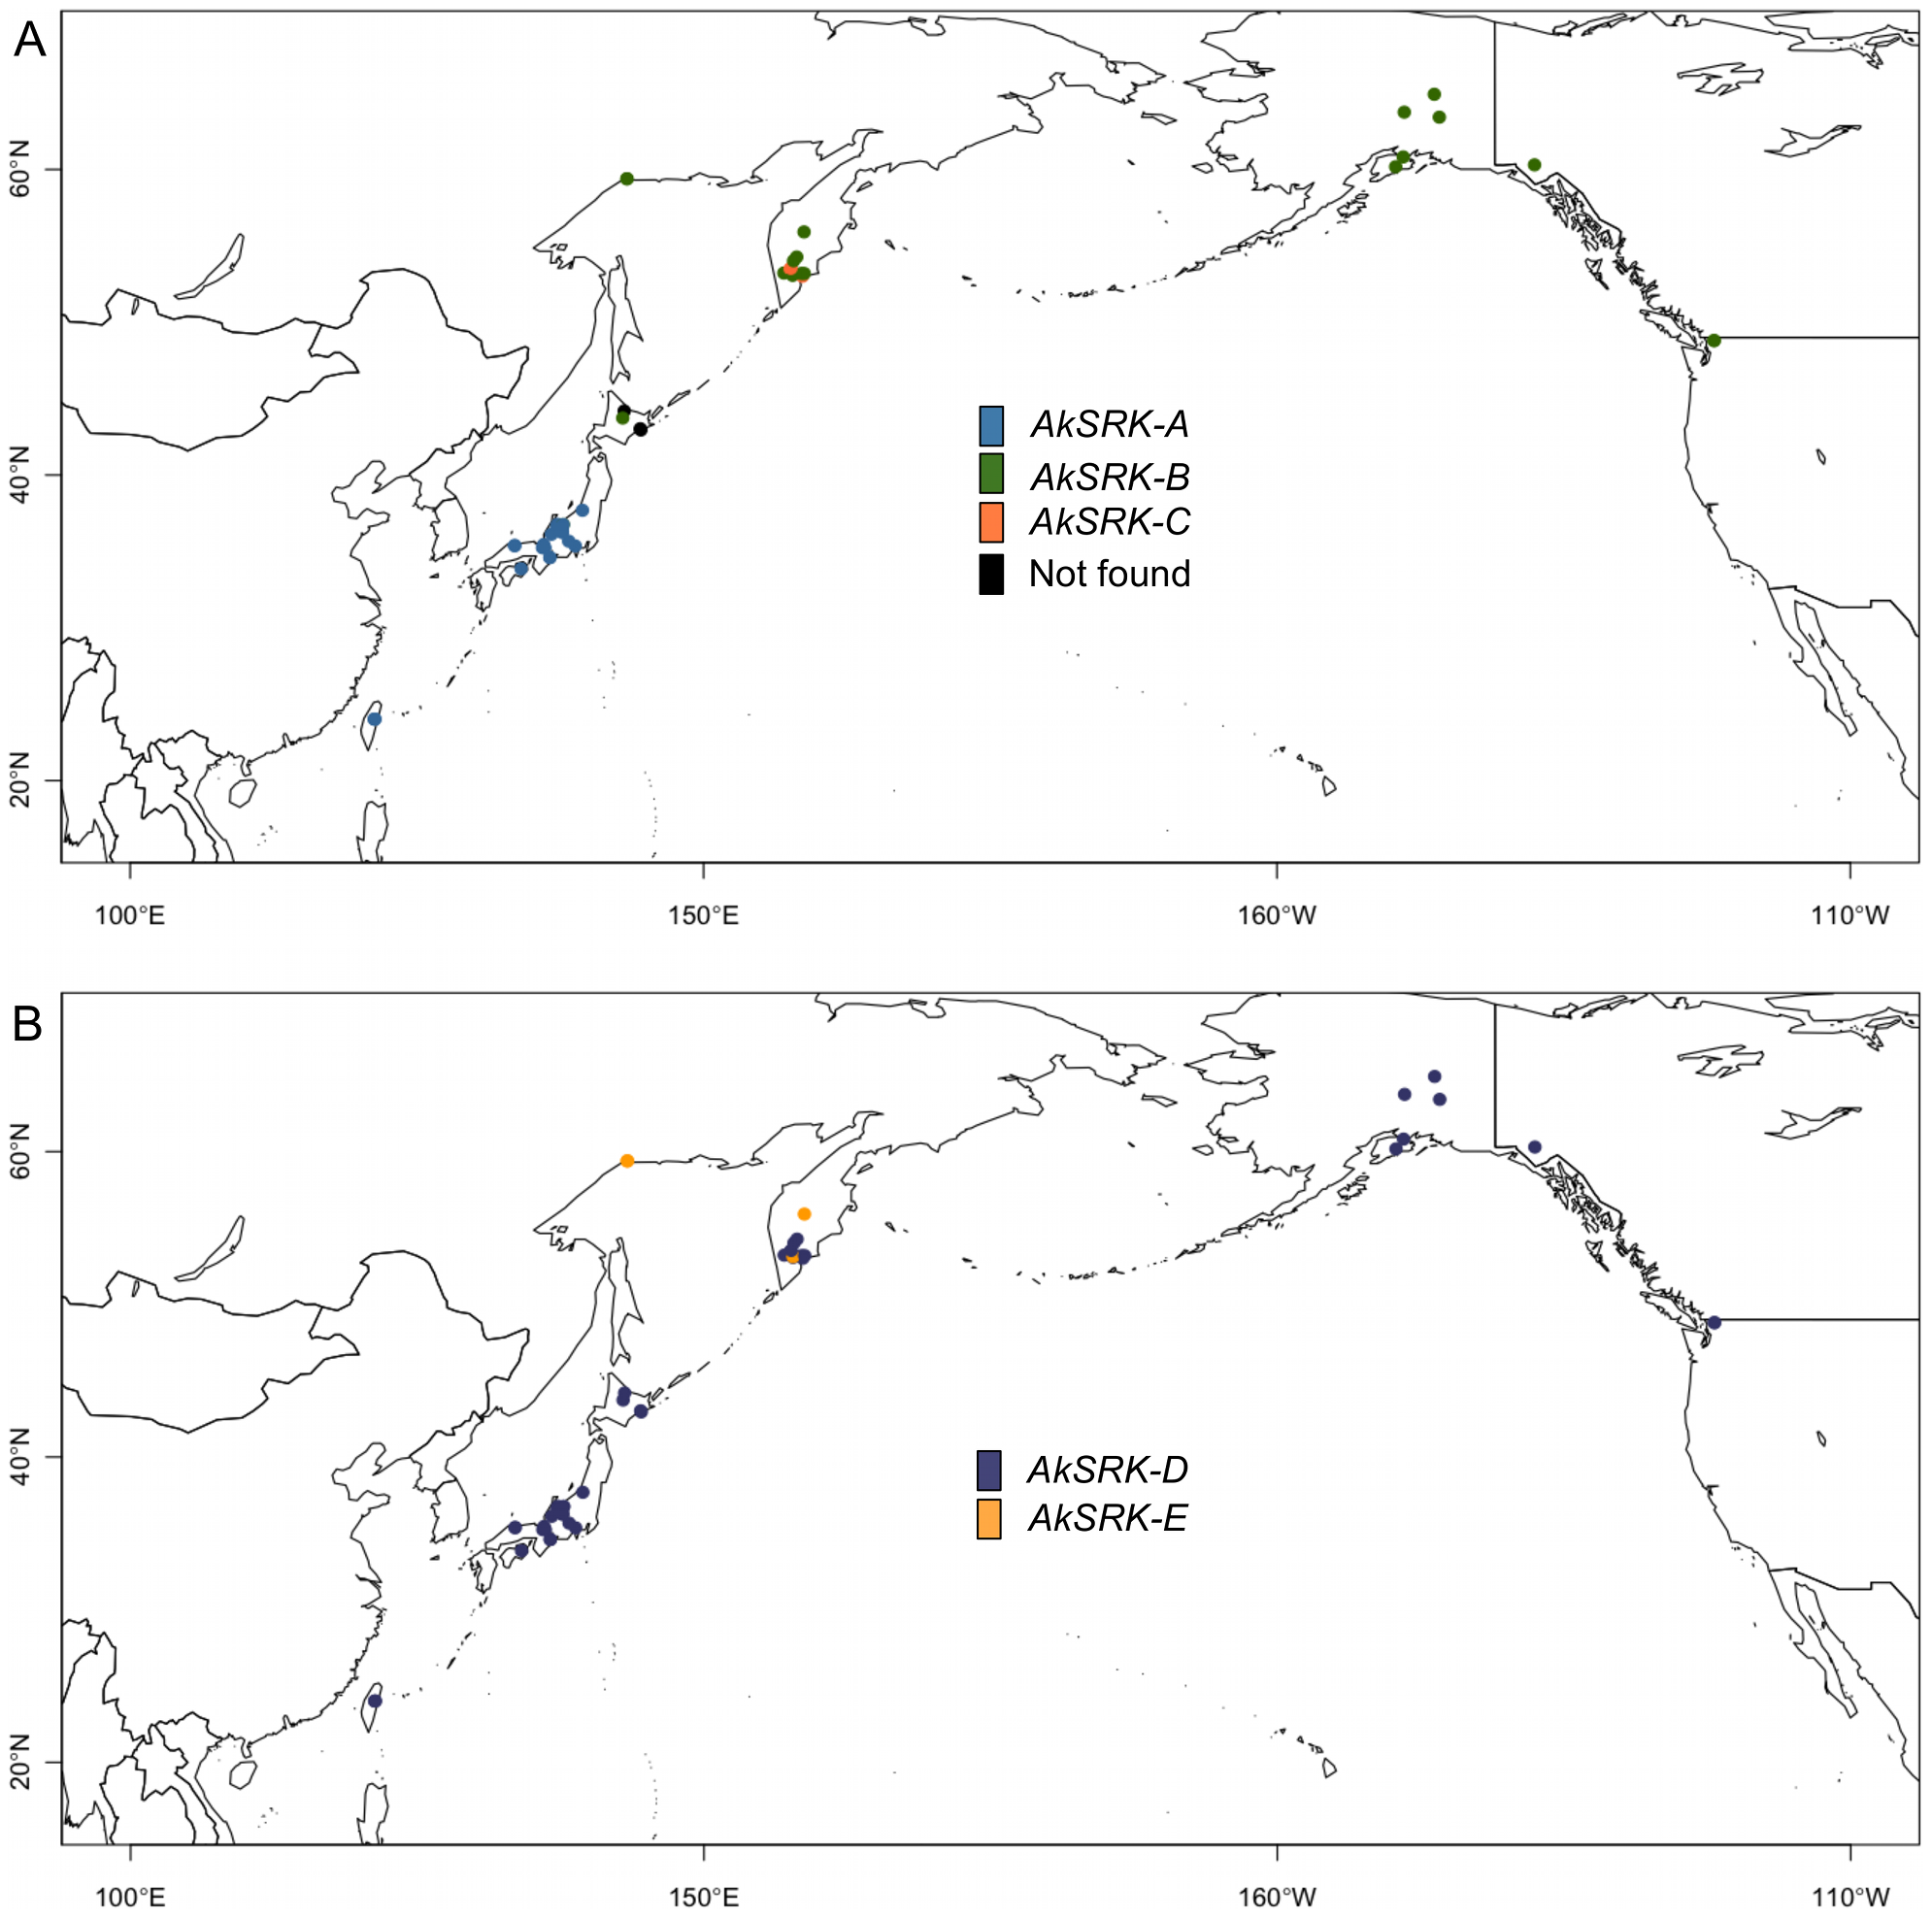 Geographic distribution of <i>S</i>-haplogroups in <i>A. kamchatica</i>.